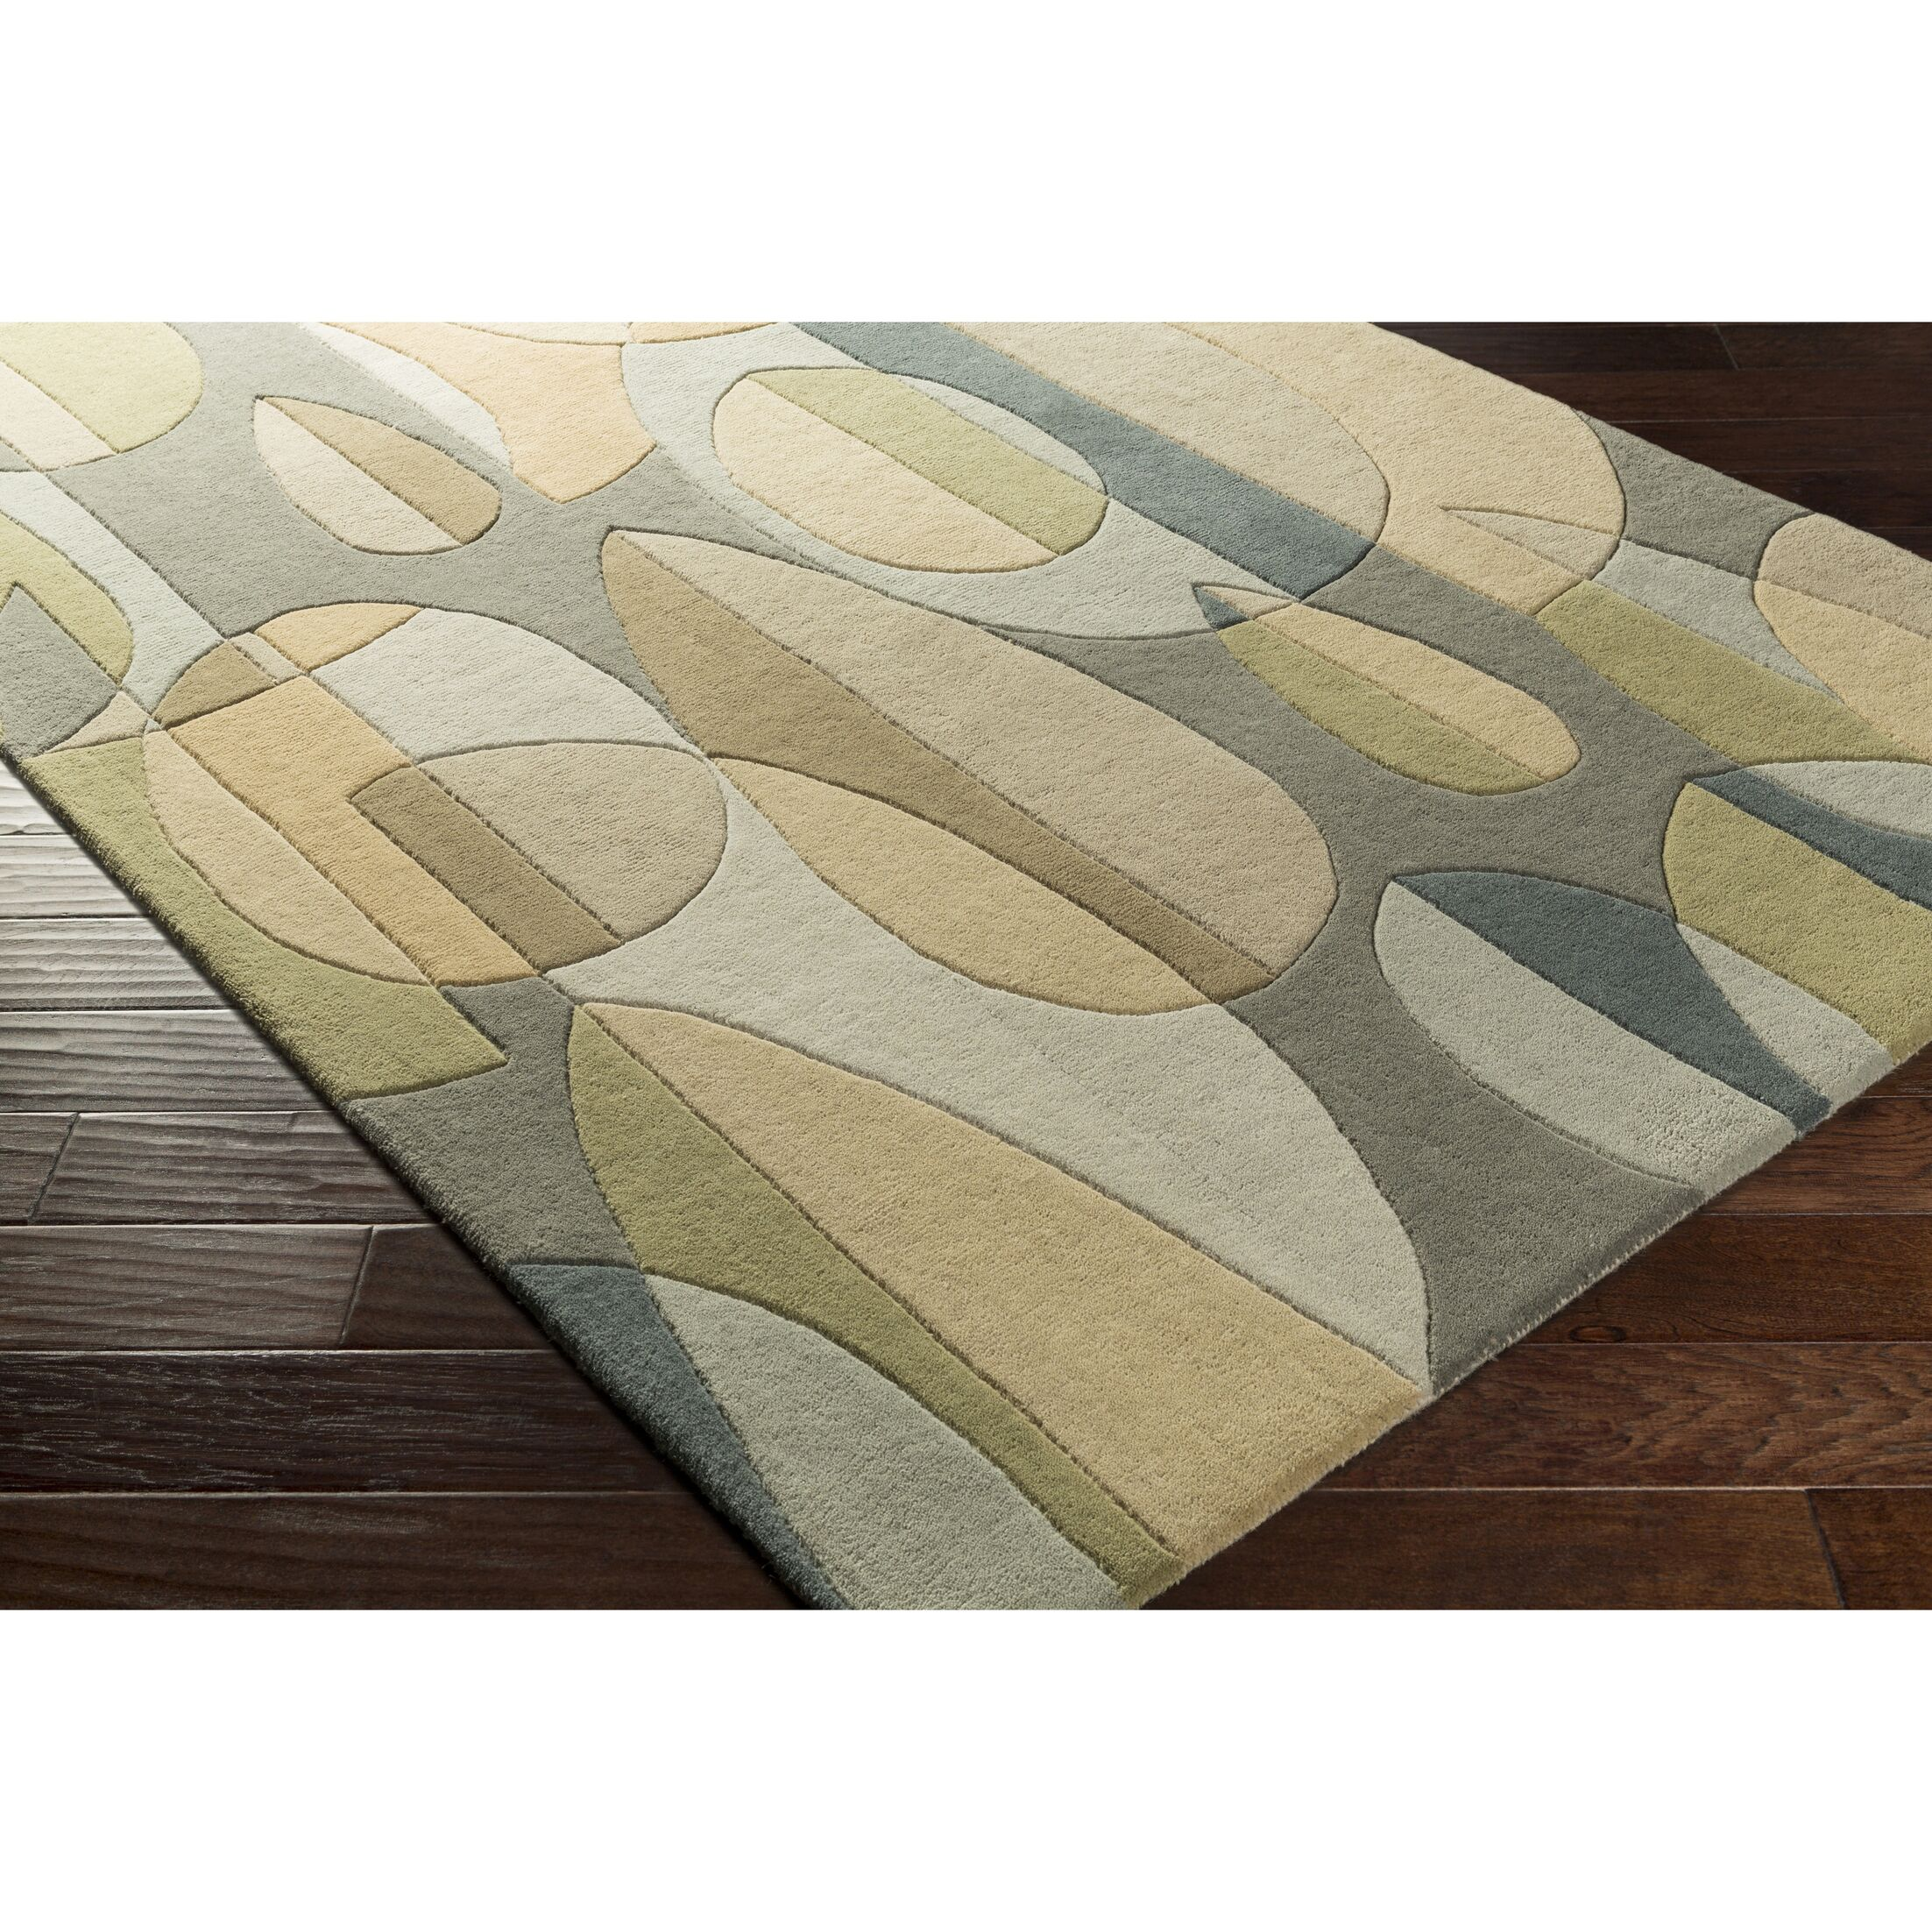 Dewald Hand-Tufted Blue/Green Area Rug Rug Size: Novelty 8' x 10'